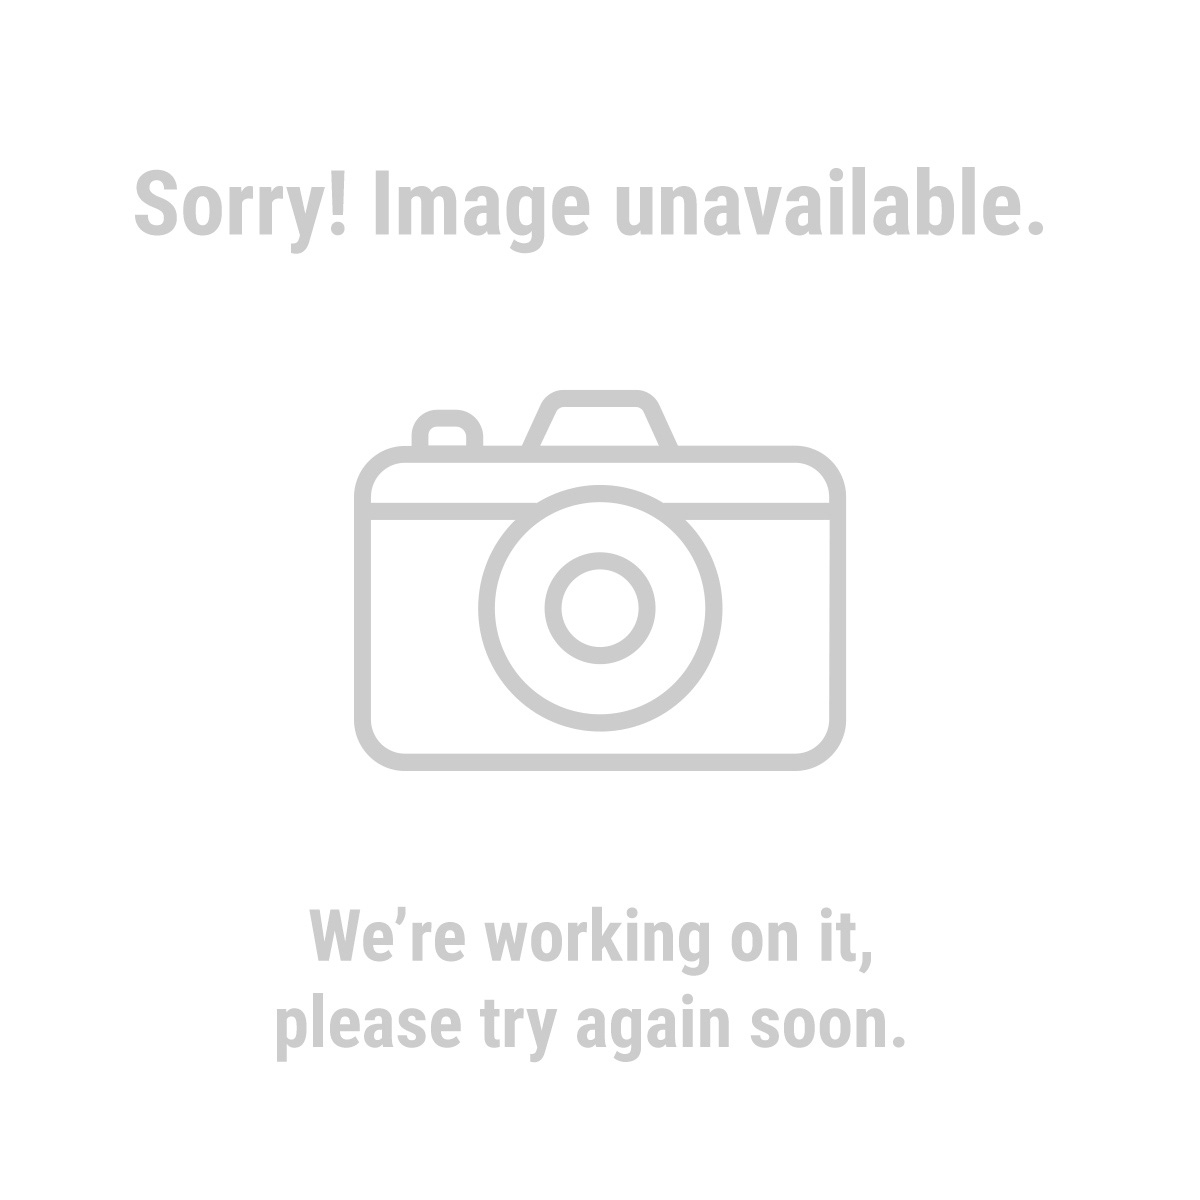 Pittsburgh® 91673 4 Piece Midget Locking Pliers Set